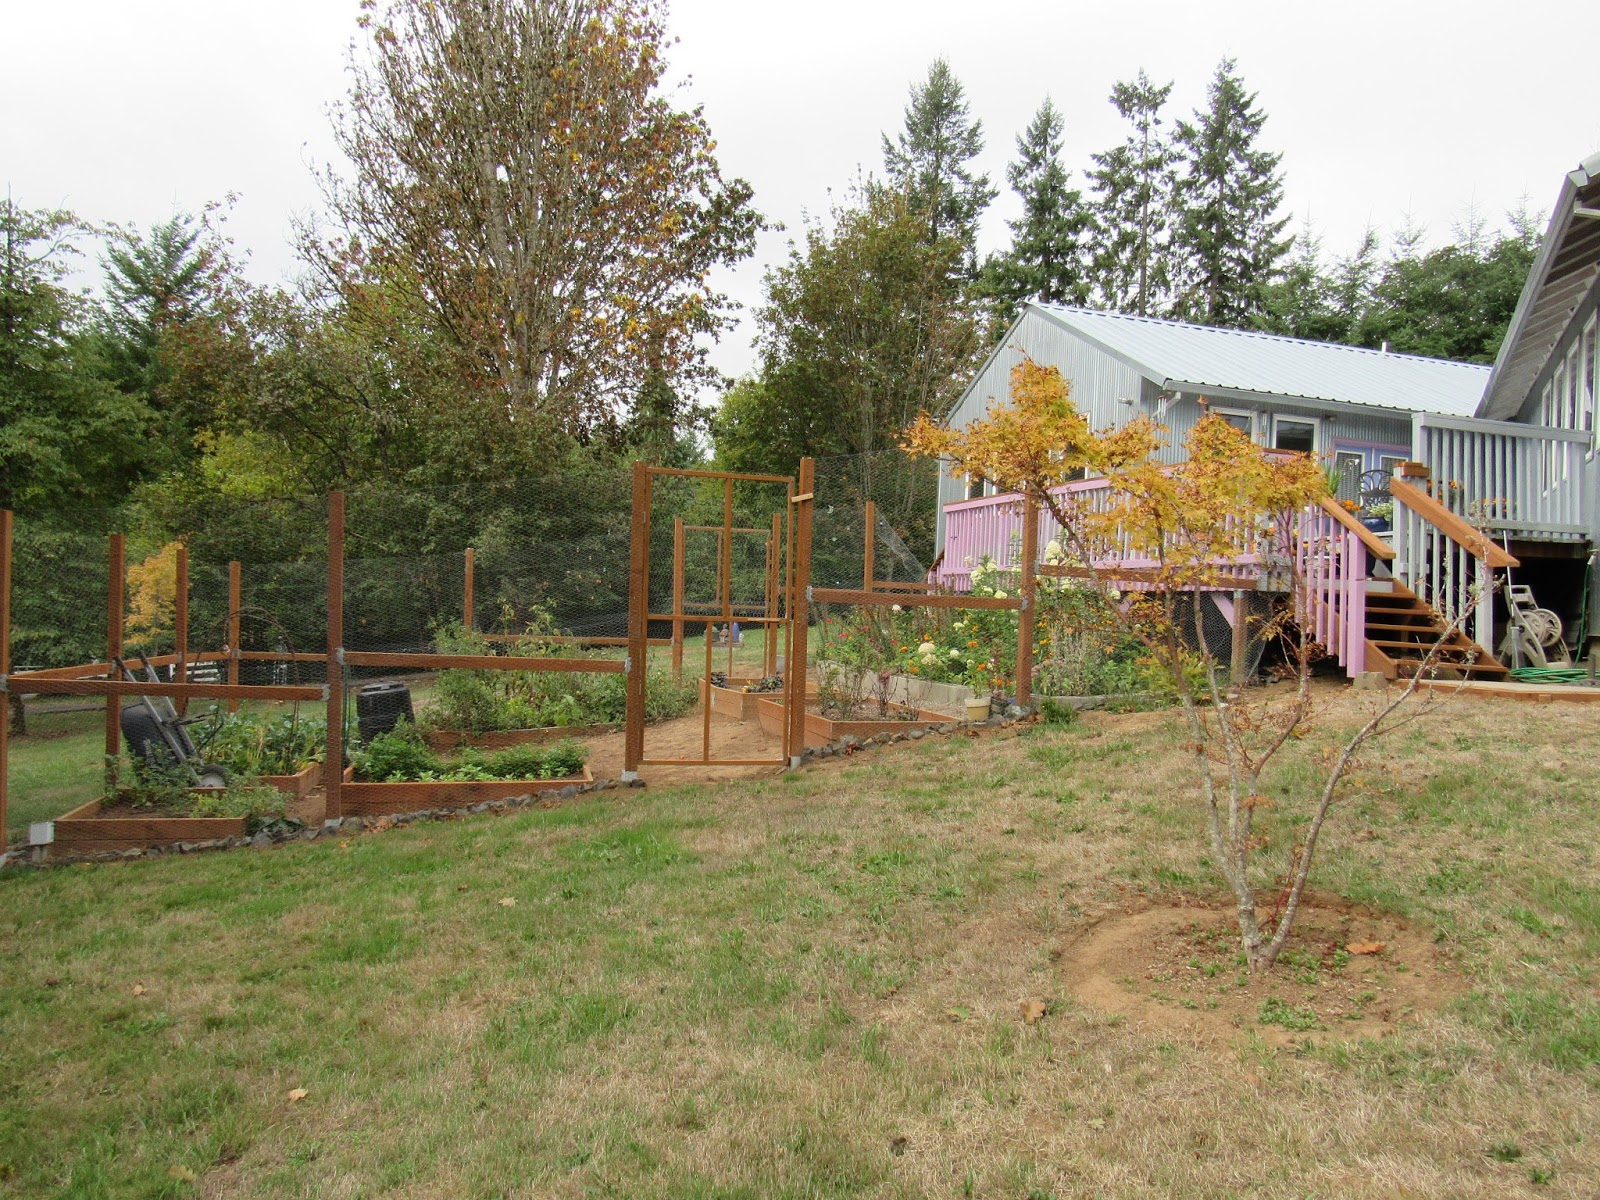 Before and After: A Garden Emerges